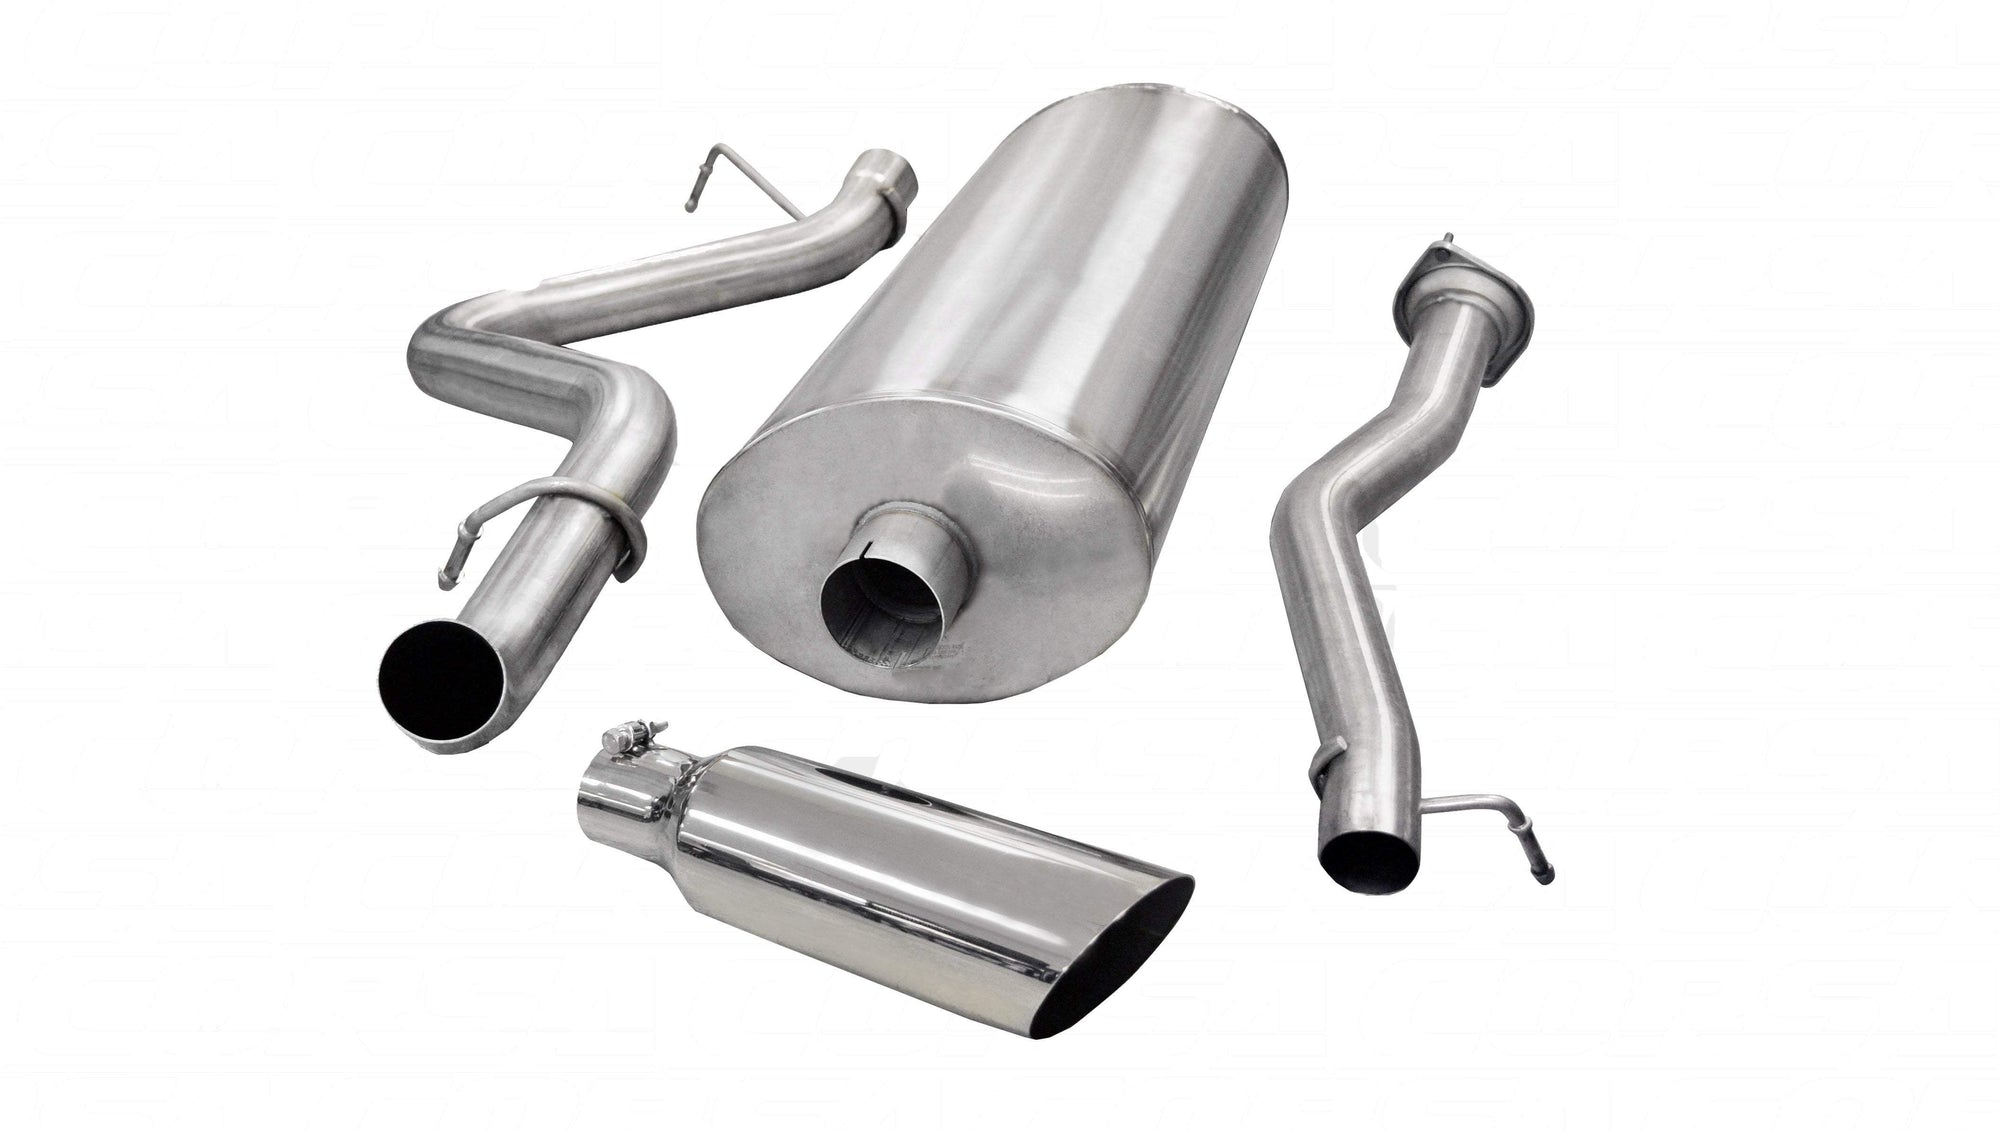 "dB Cat-Back Exhaust Polished / Sport / Single Side - Single 4in 3.0"" Single Side Exit Cat-Back Exhaust System with 4.0"" Tip (24894) Sport Sound Level"